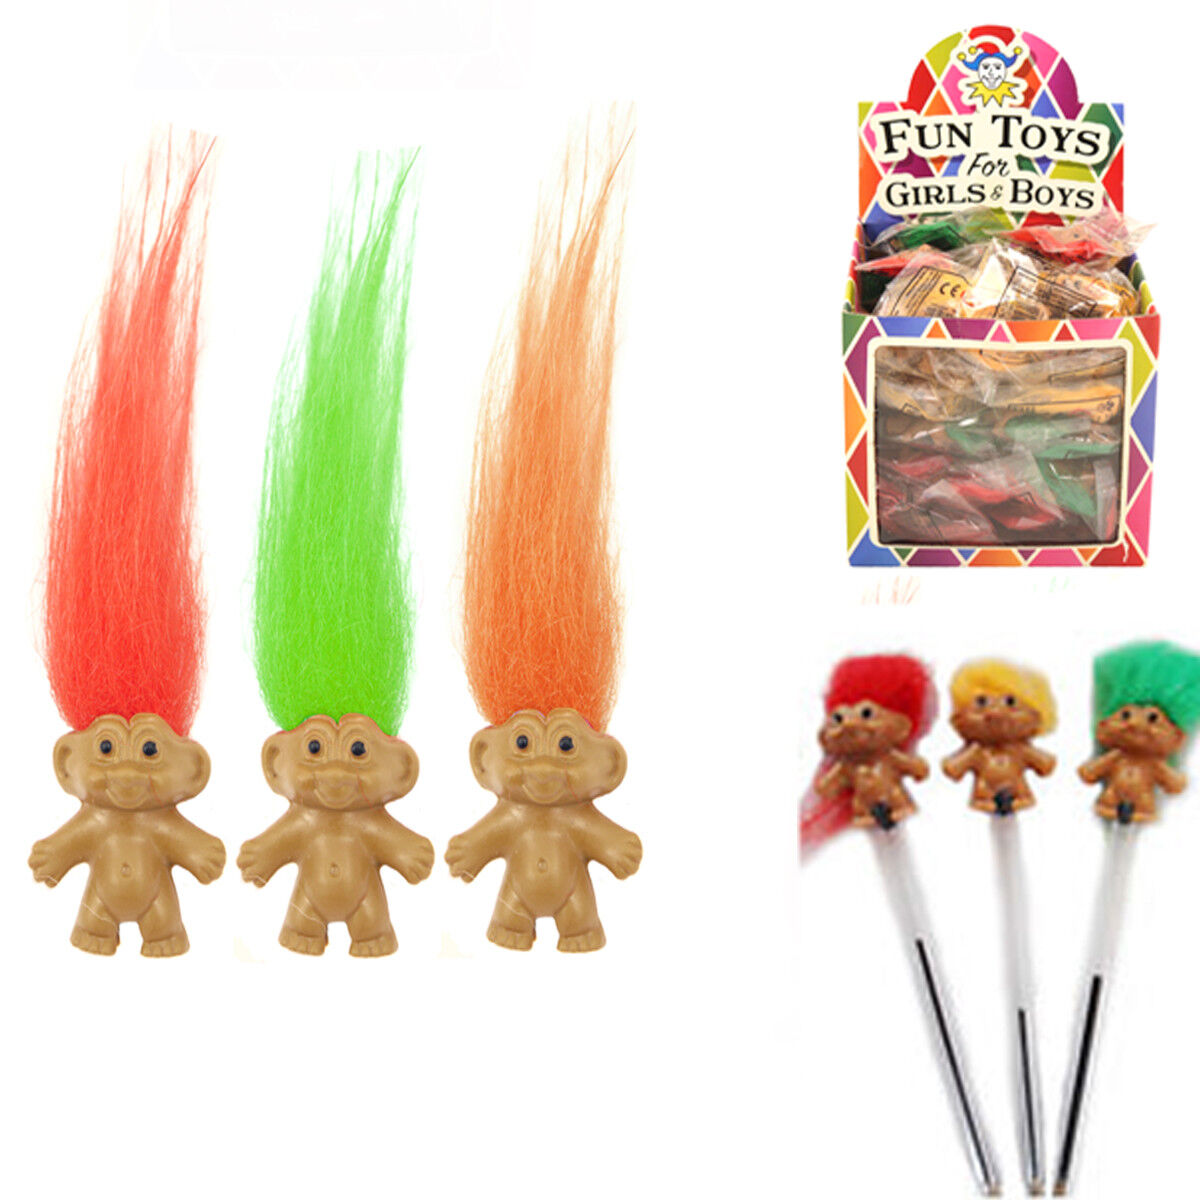 3,6,12 Trolls Pencil Topper Mini Fun Kids Party Bag Filler Assorted Colour Hair